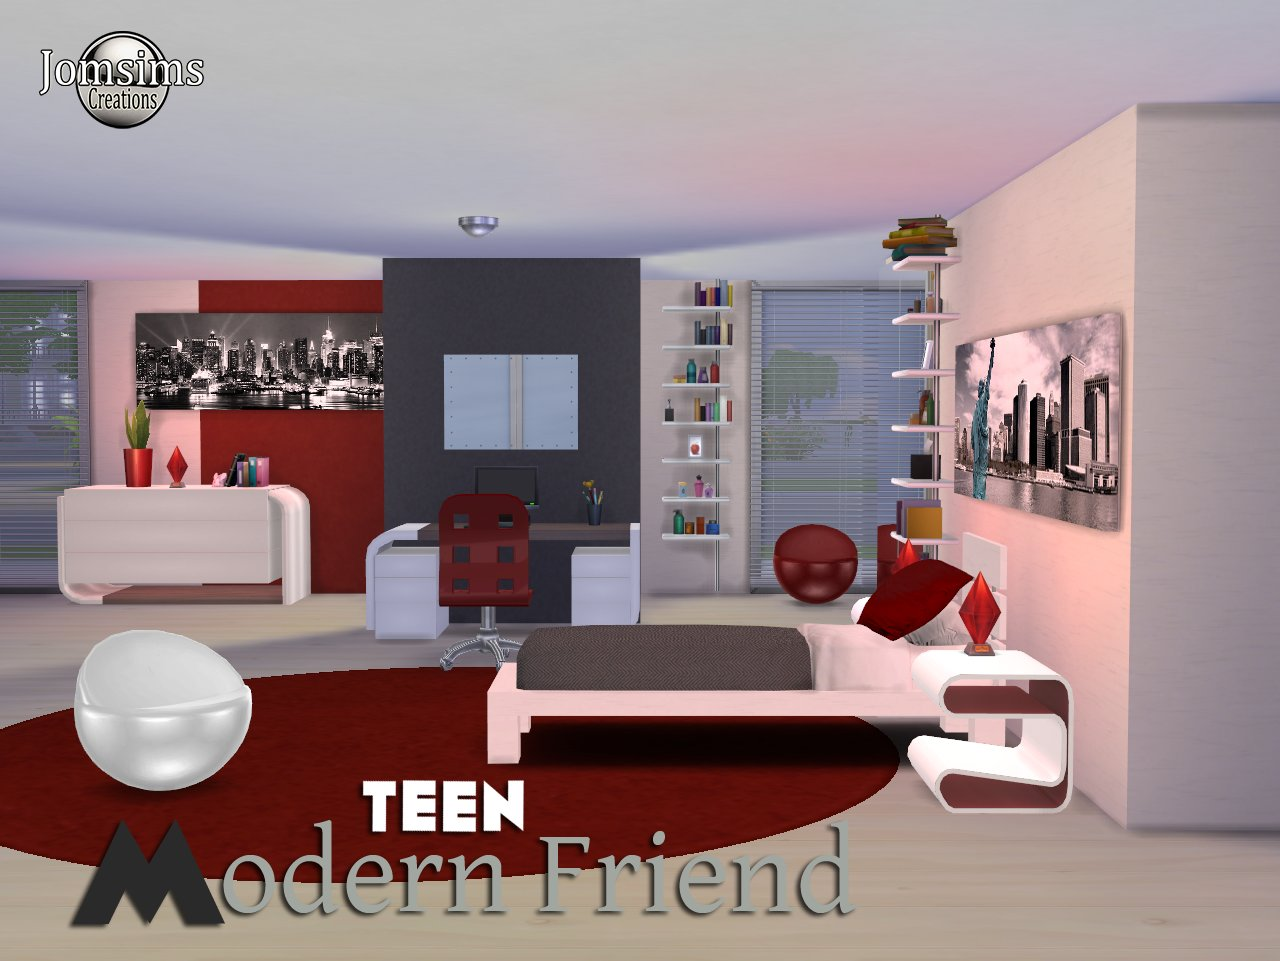 Best My Sims 4 Blog Modern Friend T**N Bedroom Set By Jomsims With Pictures